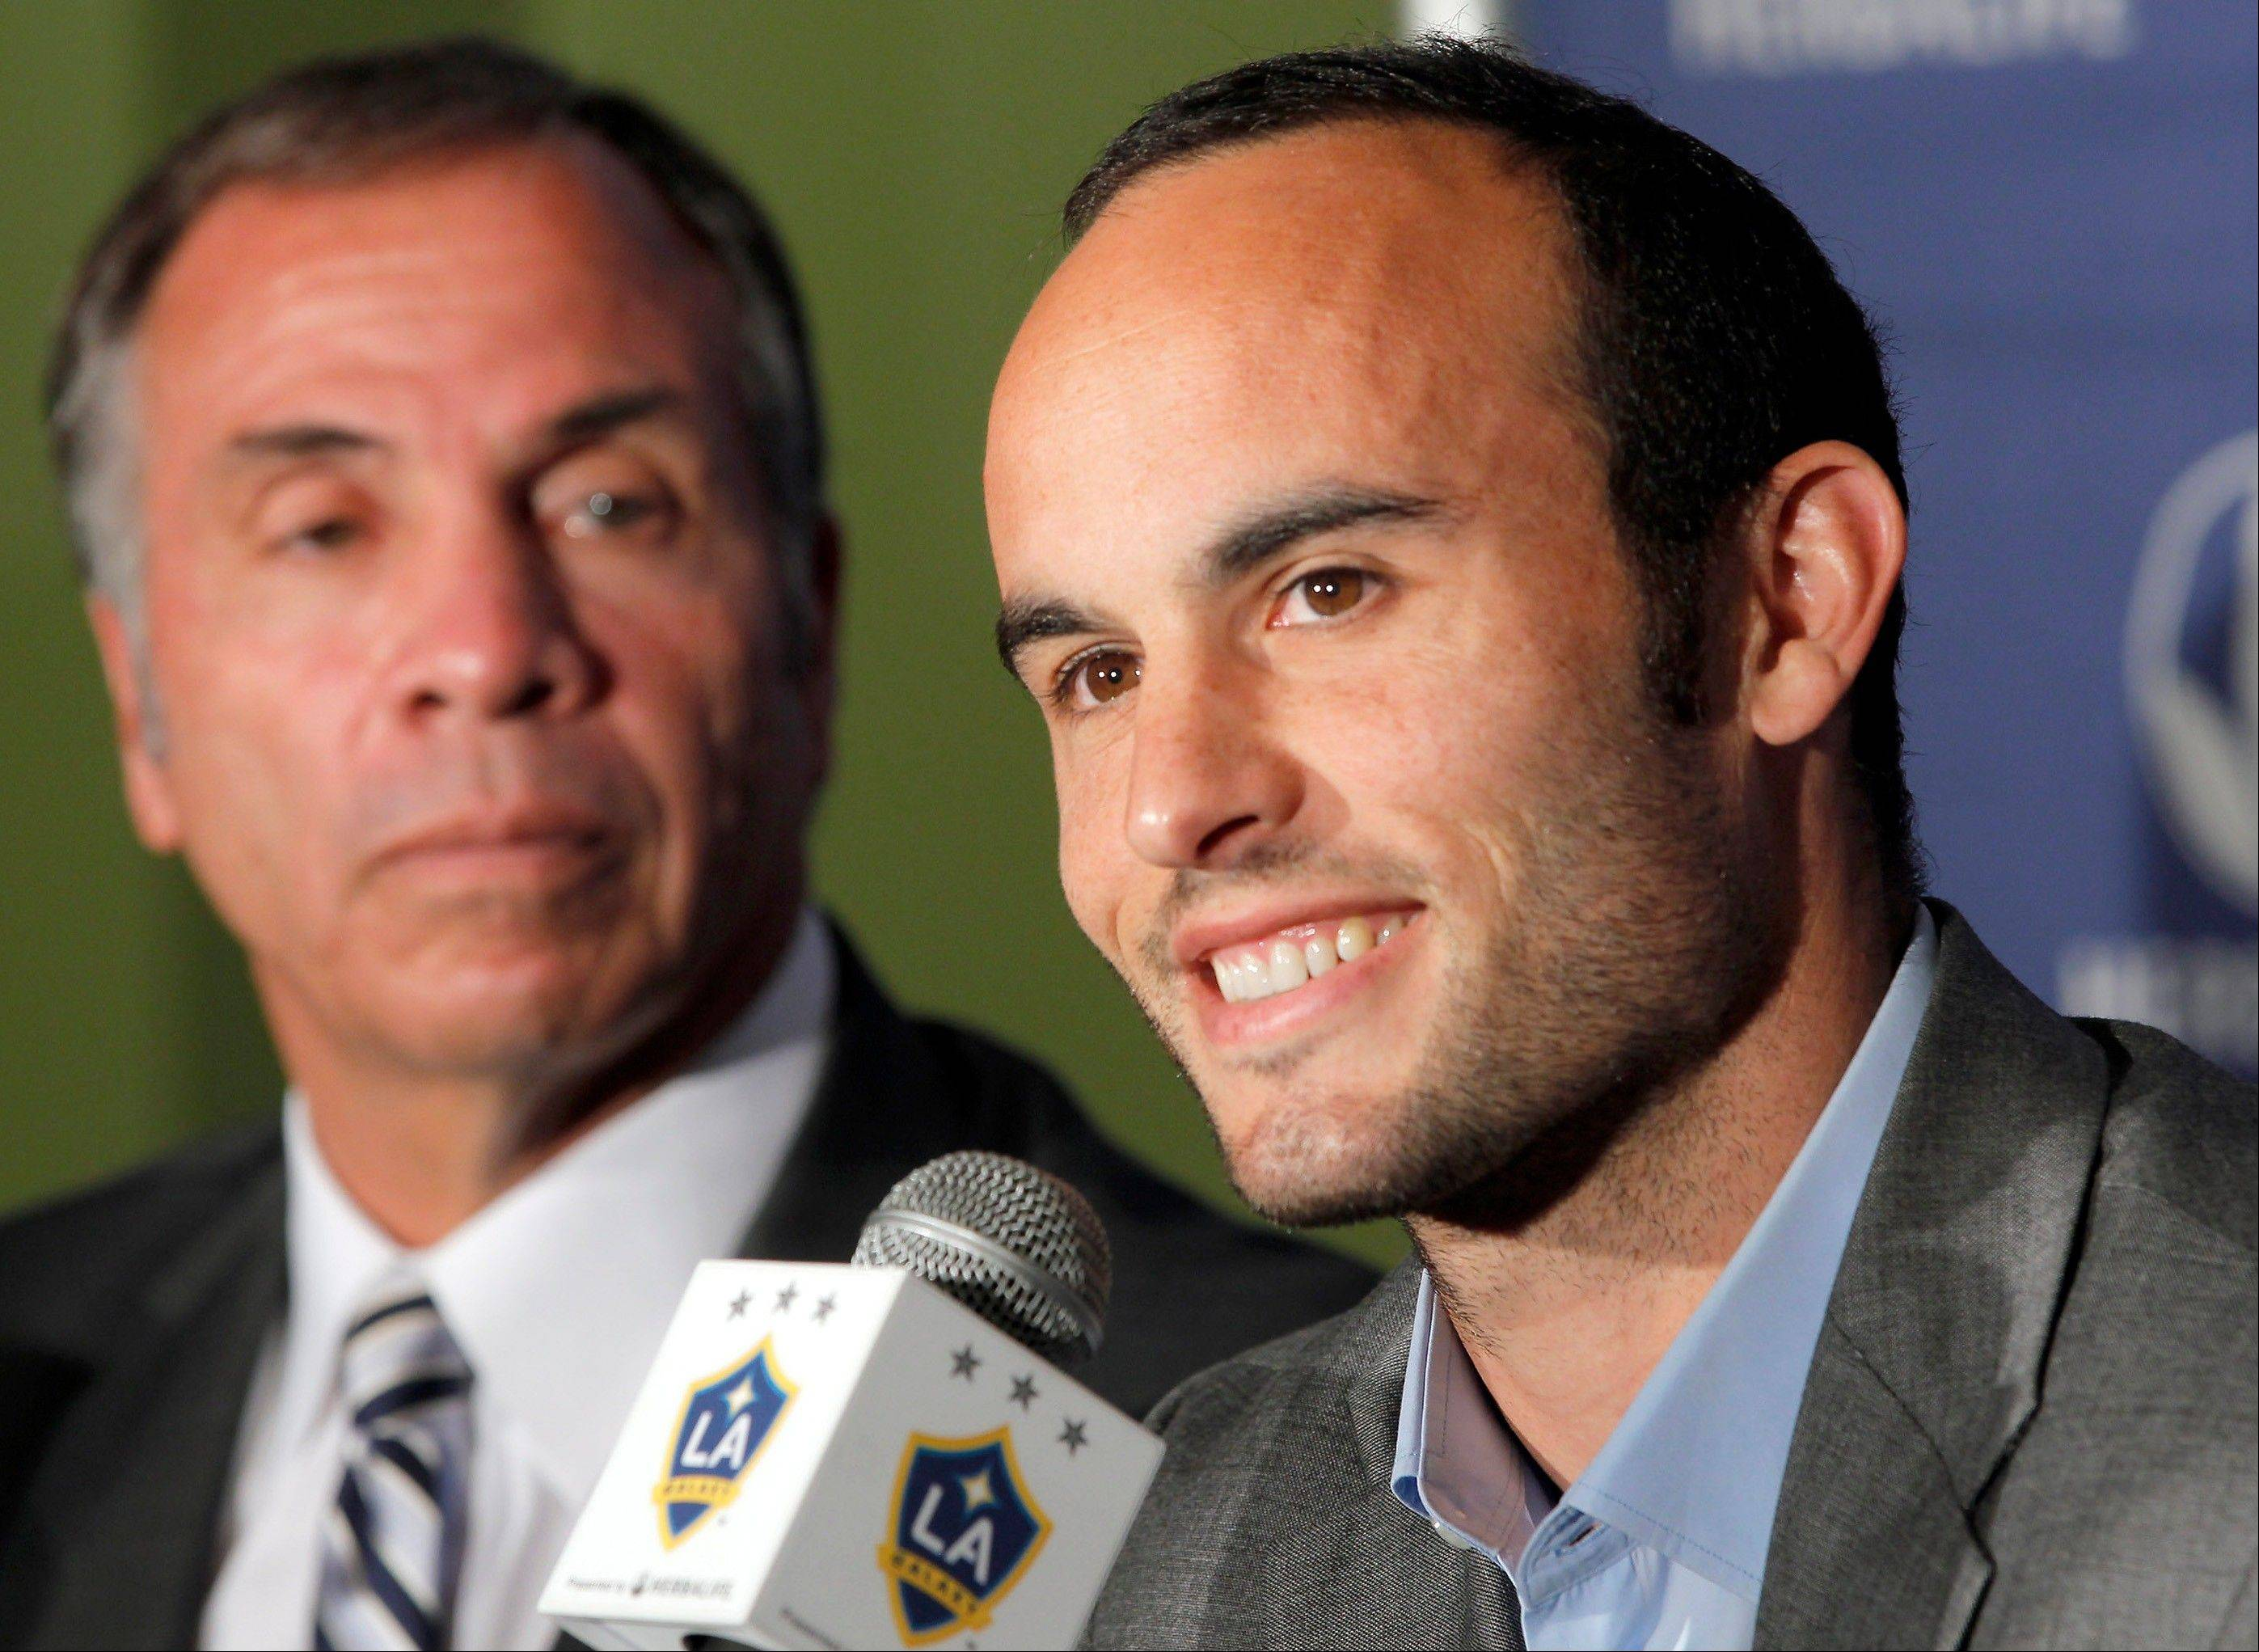 Los Angeles Galaxy forward Landon Donovan, right, signed a multiyear contract extension with on Wednesday, keeping the high-scoring U.S. national team star with his MLS club. He's also back on the U.S. national team.